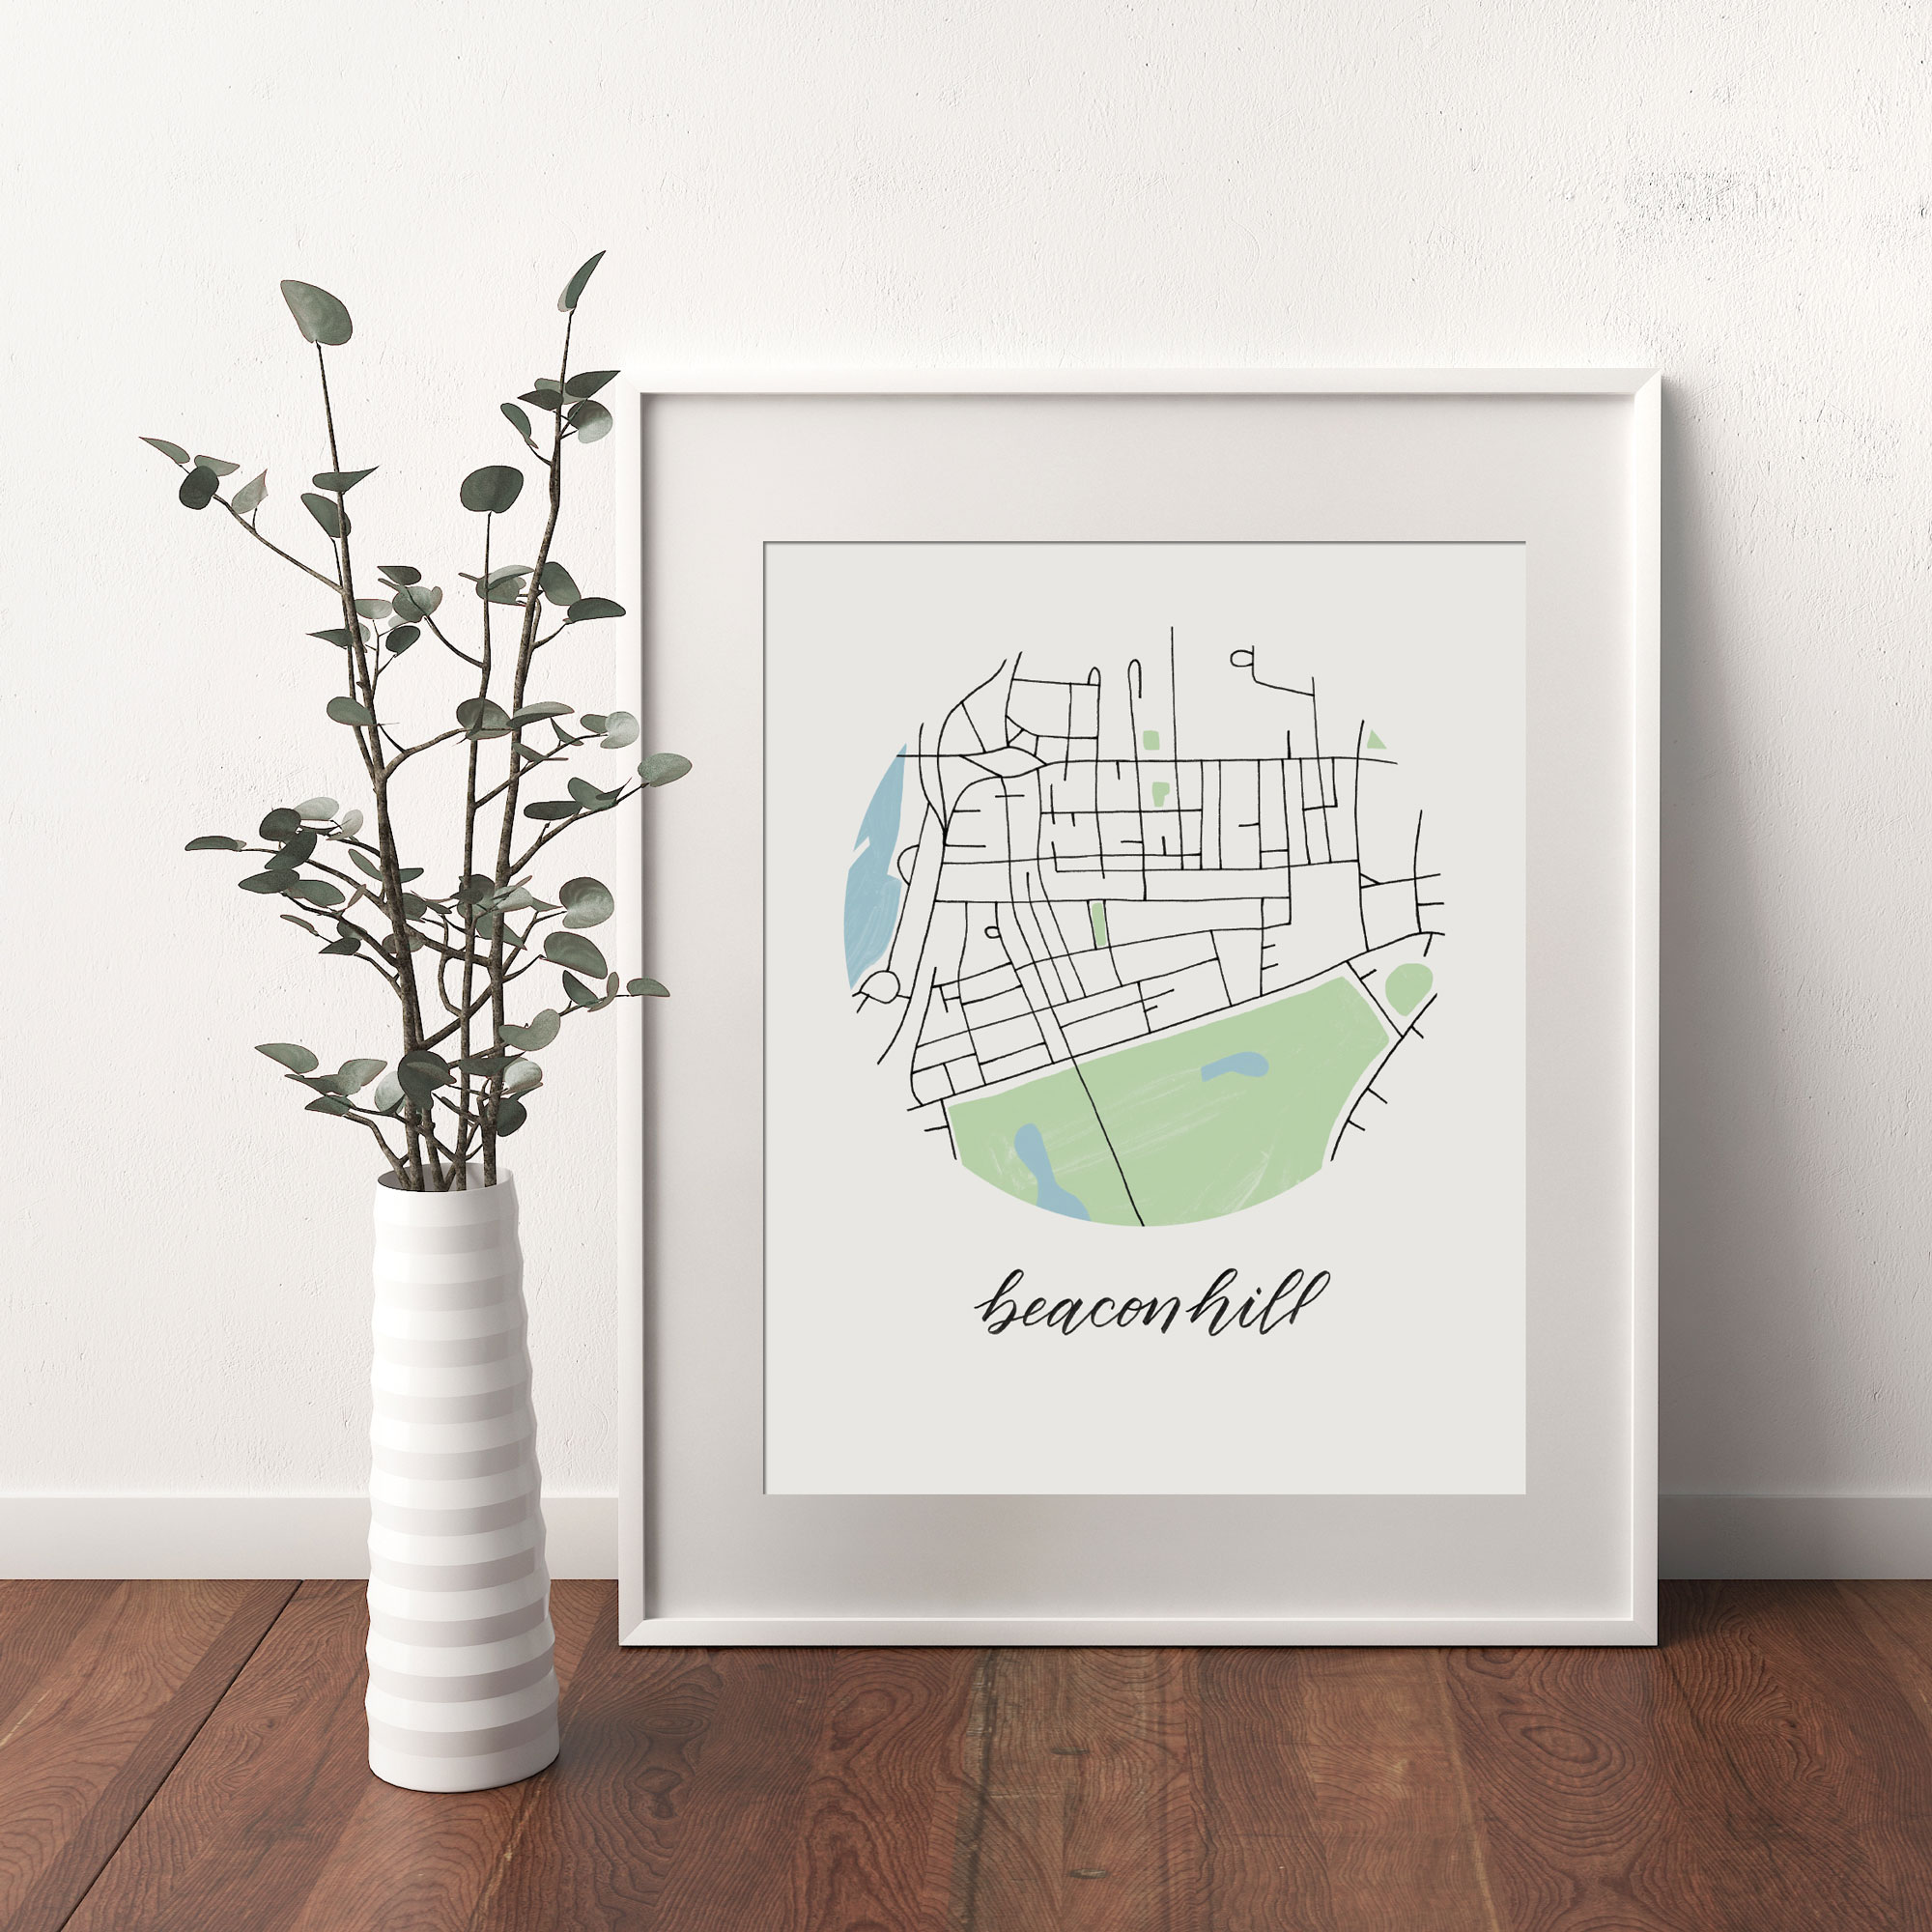 Beacon Hill, Boston Map print framed and leaning on white wall next to dried leaves in a vase